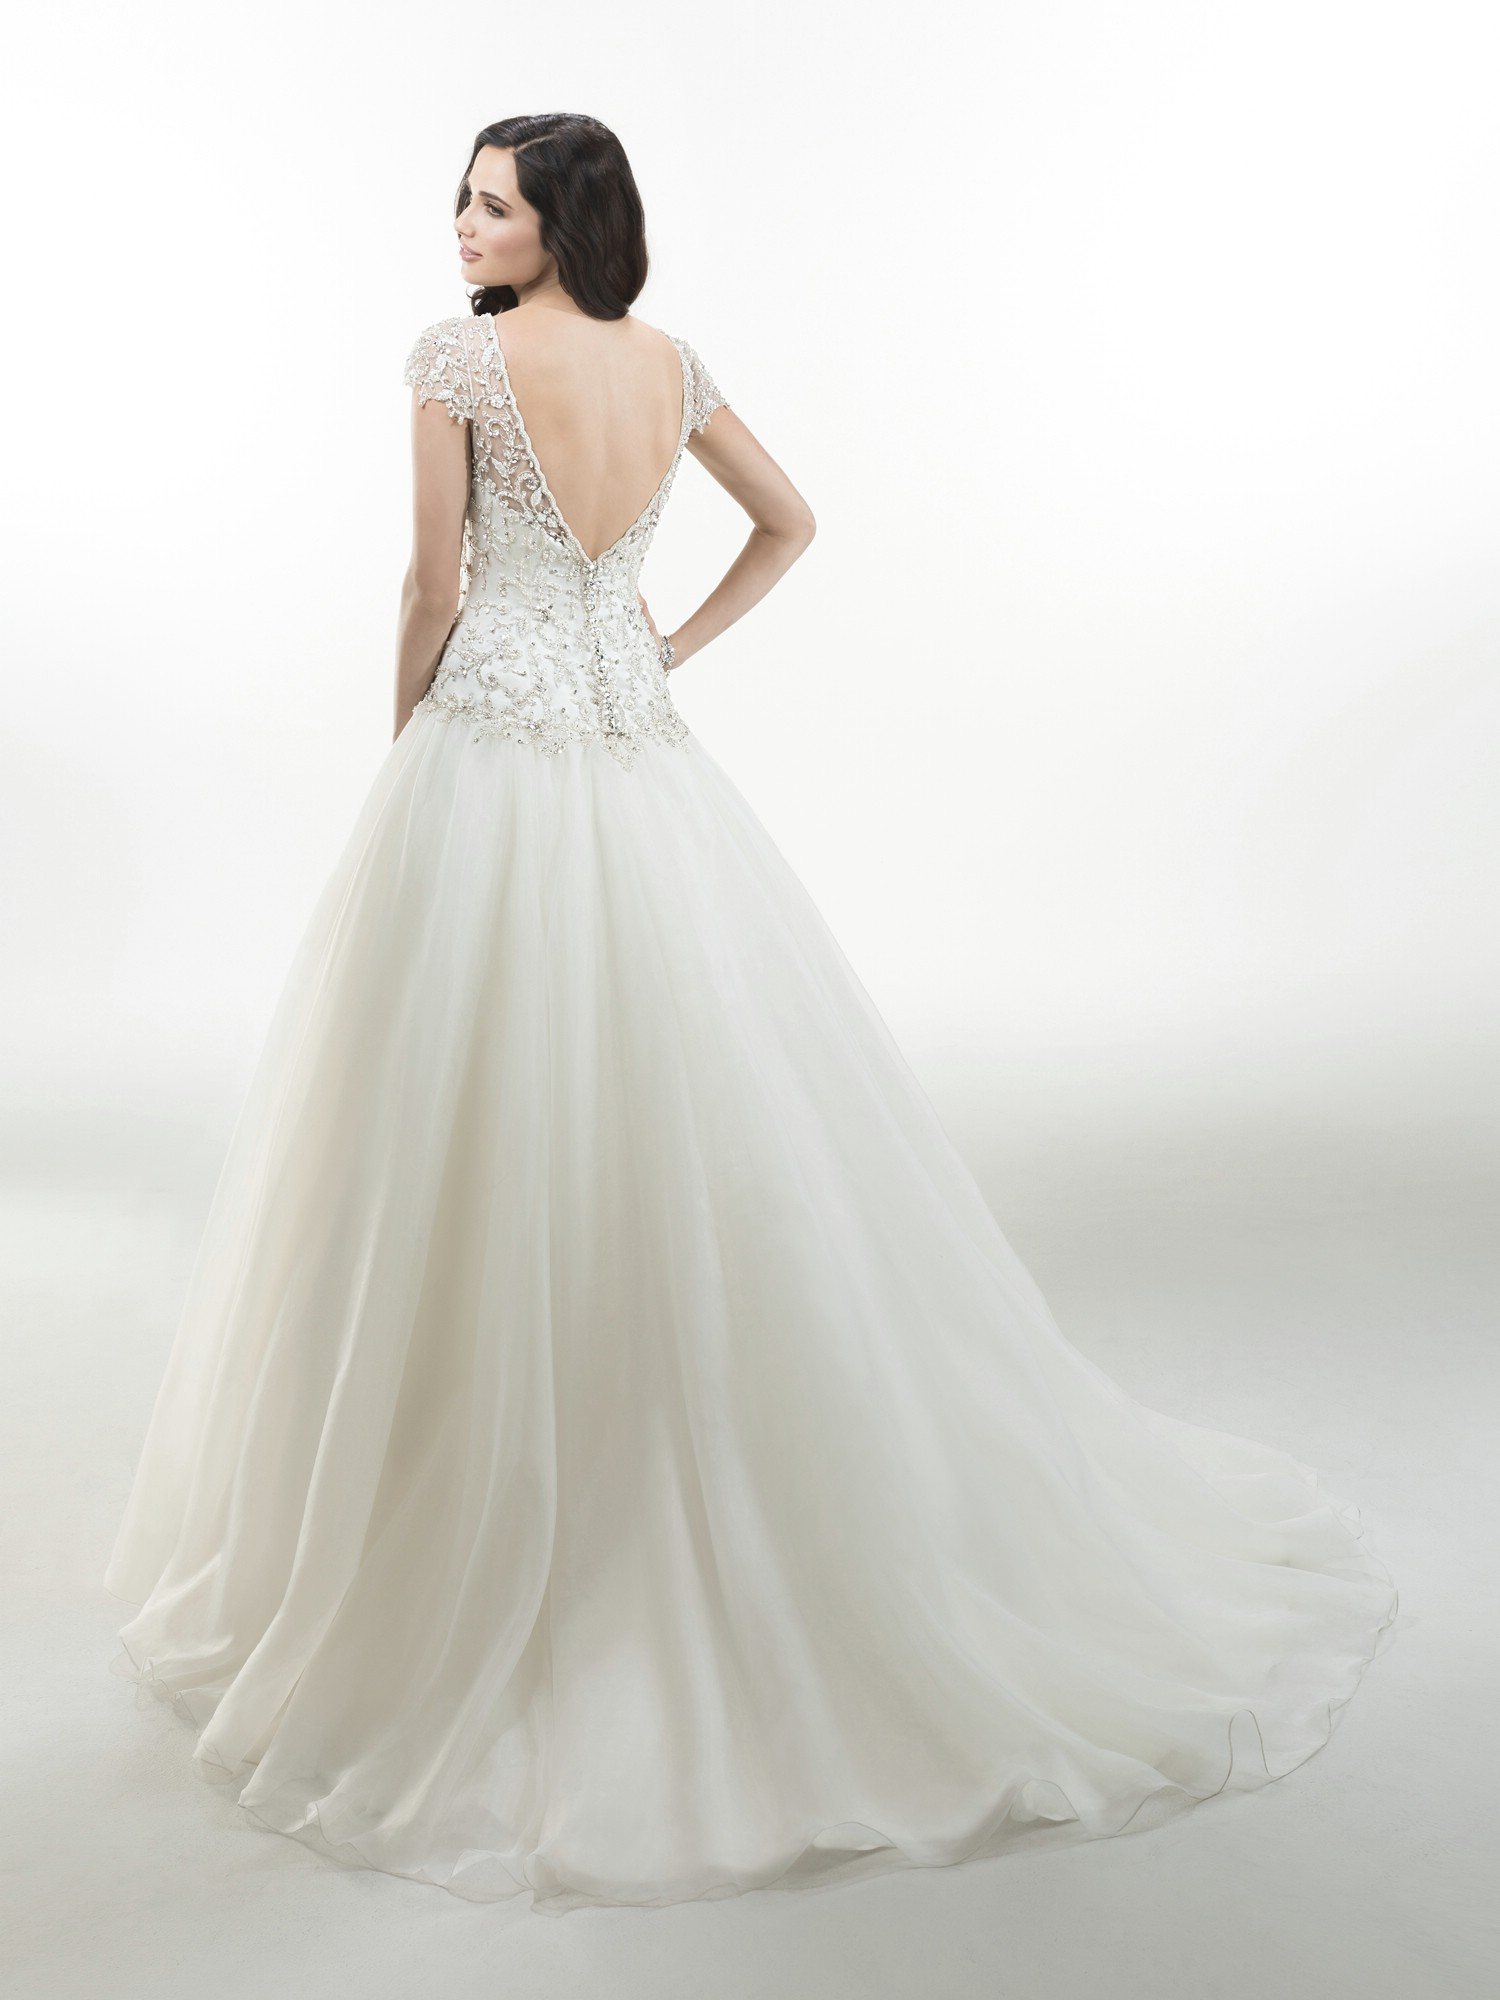 Wedding Gowns Sale Archives ⋆ Page 14 of 15 ⋆ Precious Memories ...